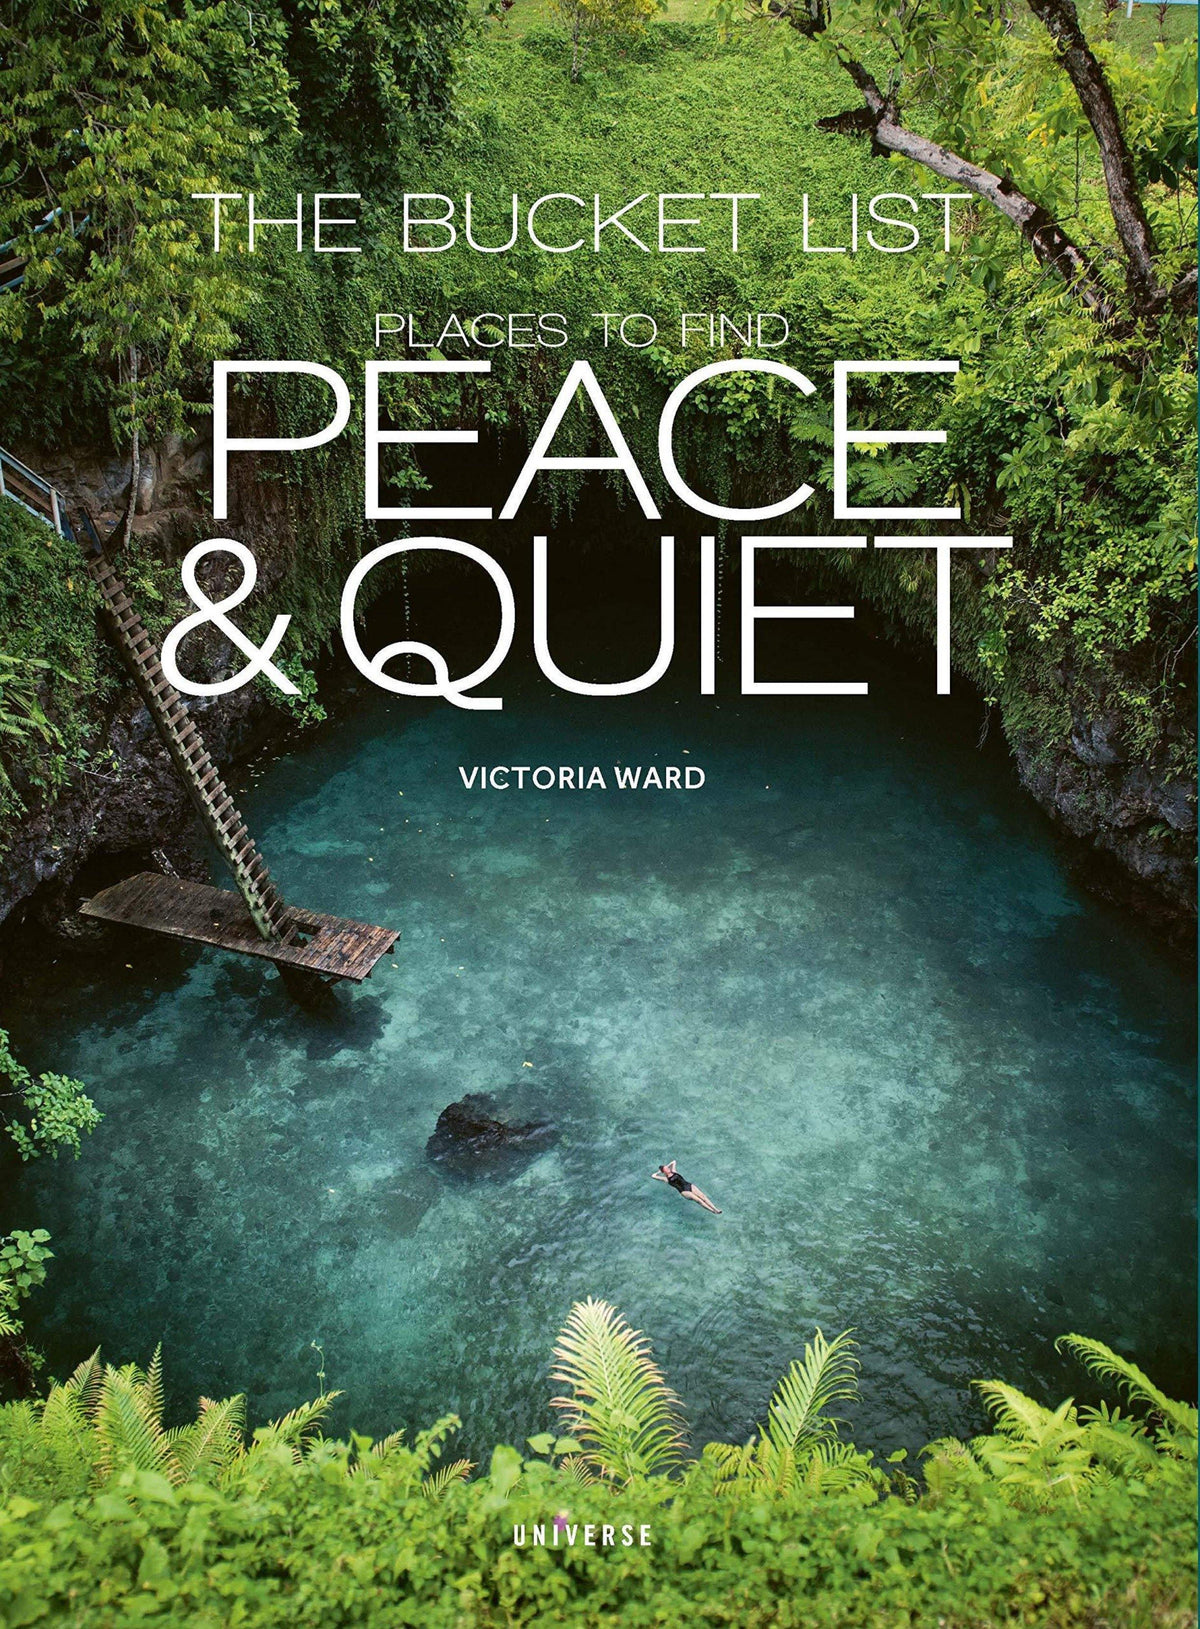 Bucket List Finds for Peace and Quiet - Wheat Boutique